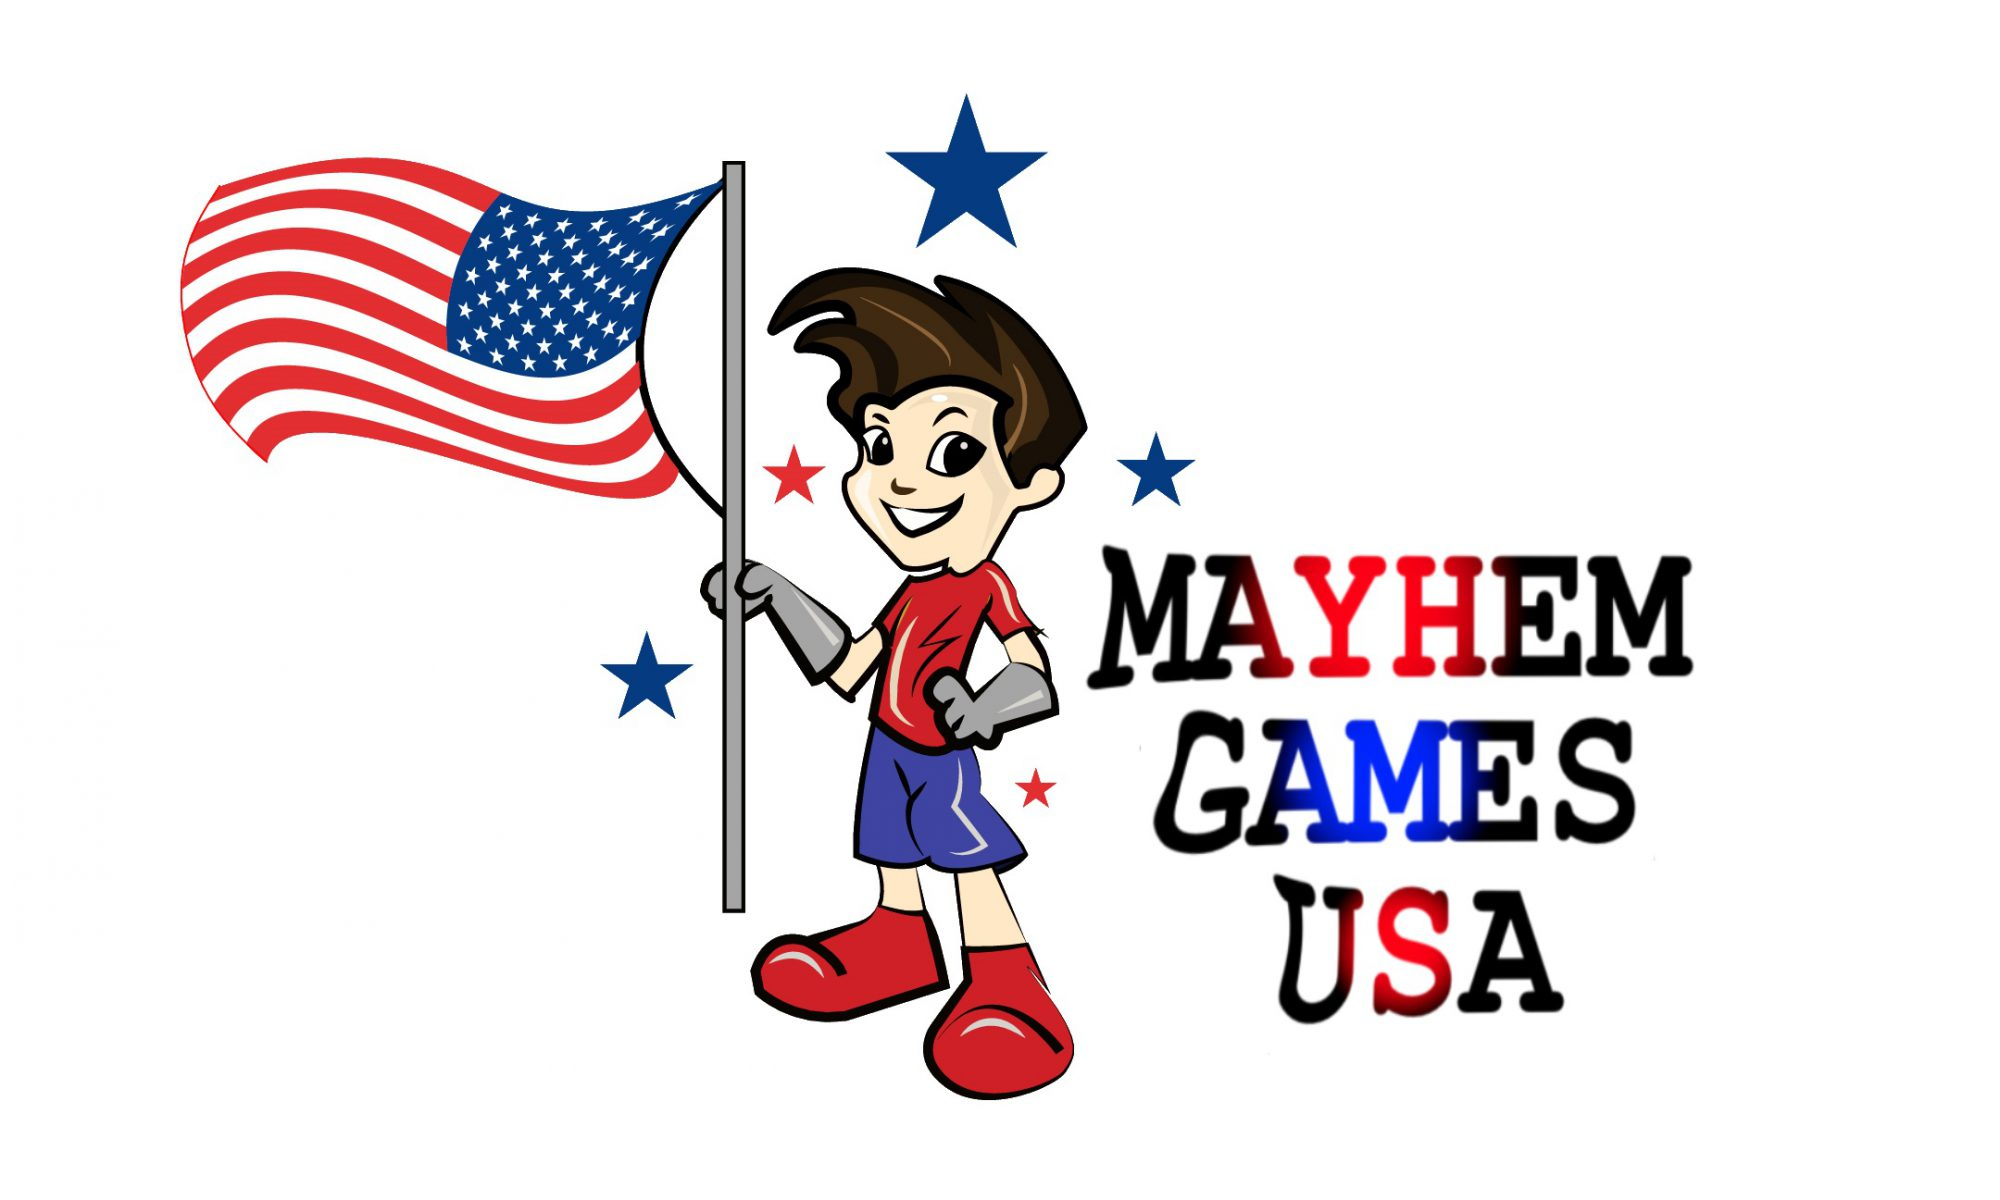 Mayhem Games USA